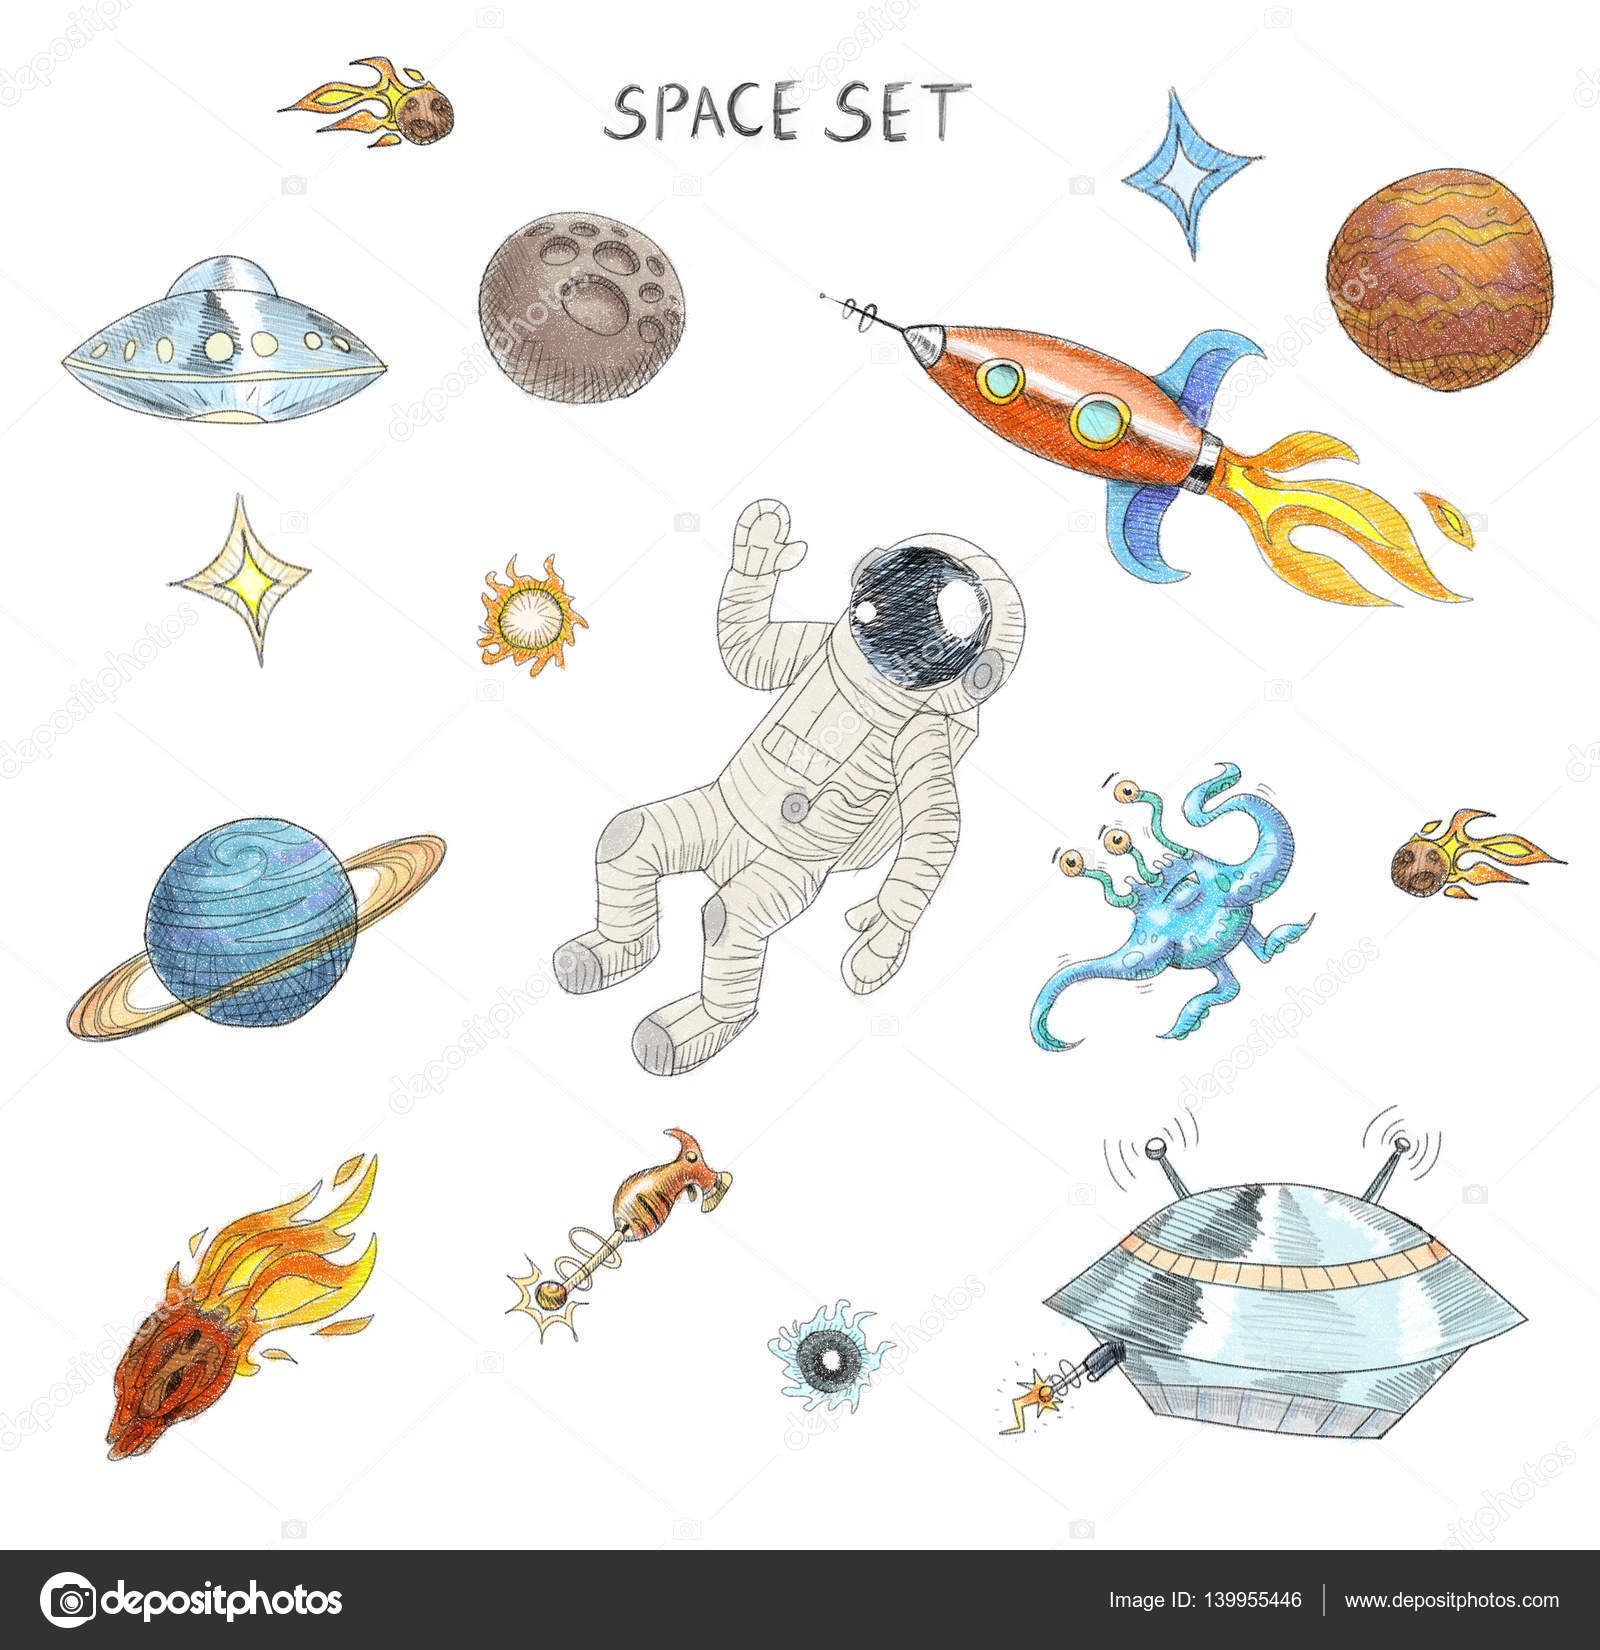 1600x1650 Drawing Of Colorful Space Objects Astronaut, Alien, Ufo